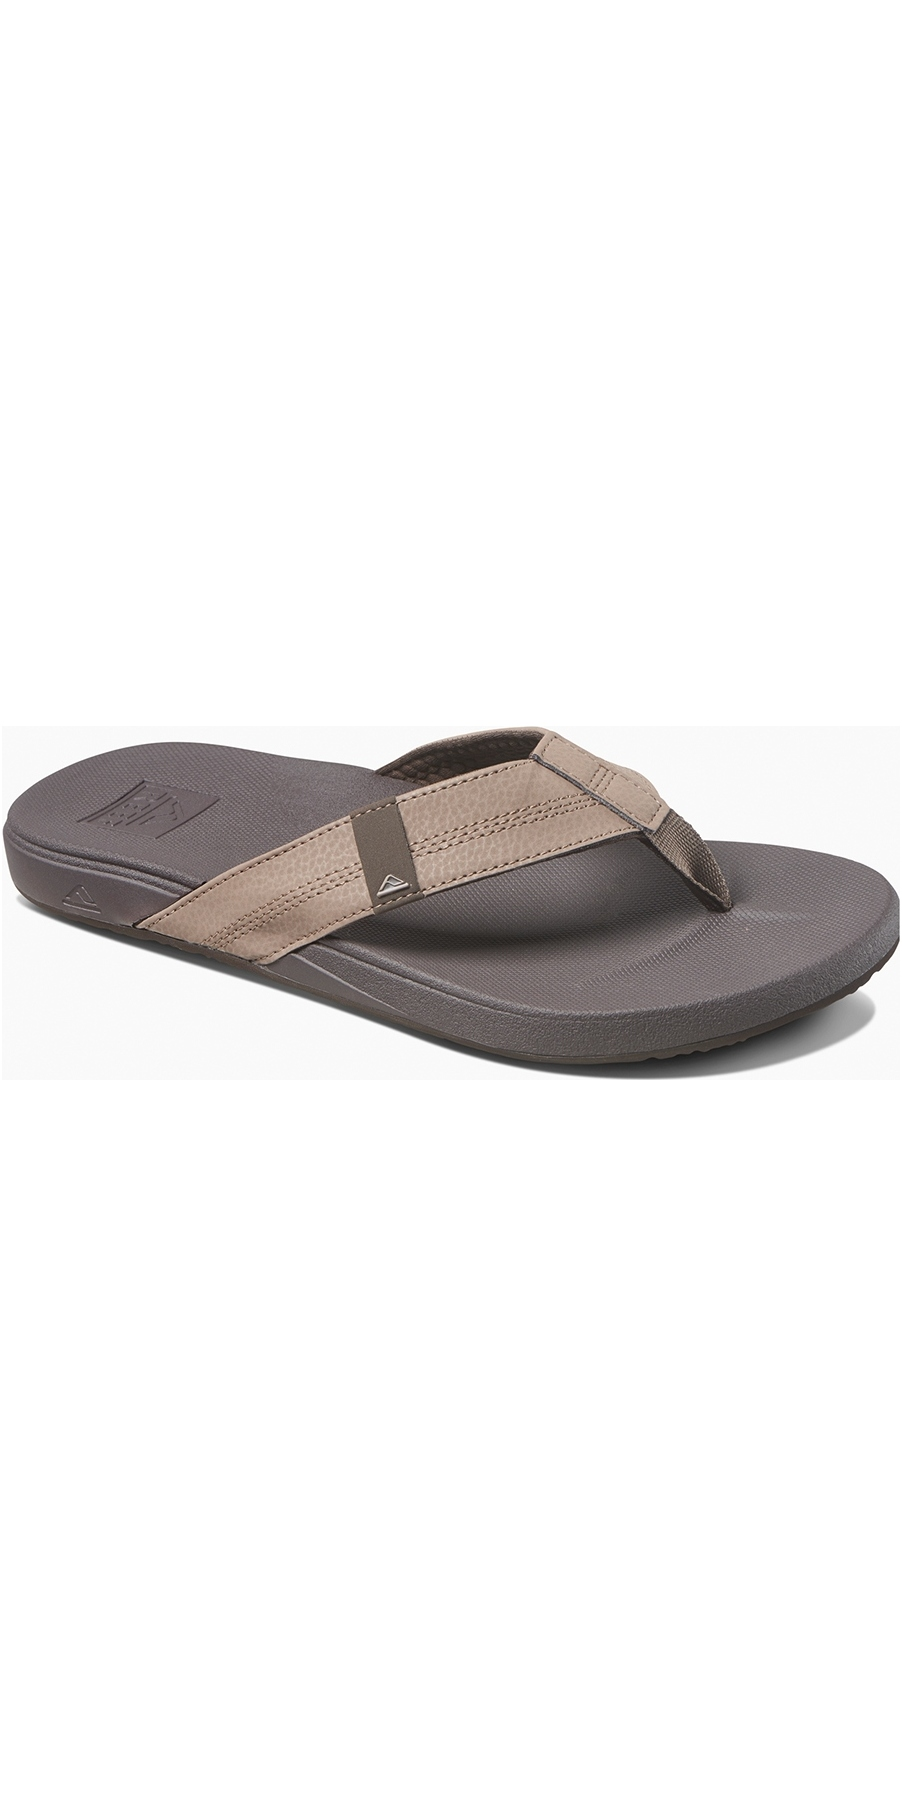 8cc708e978a3 Reef Mens Cushion Bounce Phantom Flip Flops Brown RF0A3FDI ...